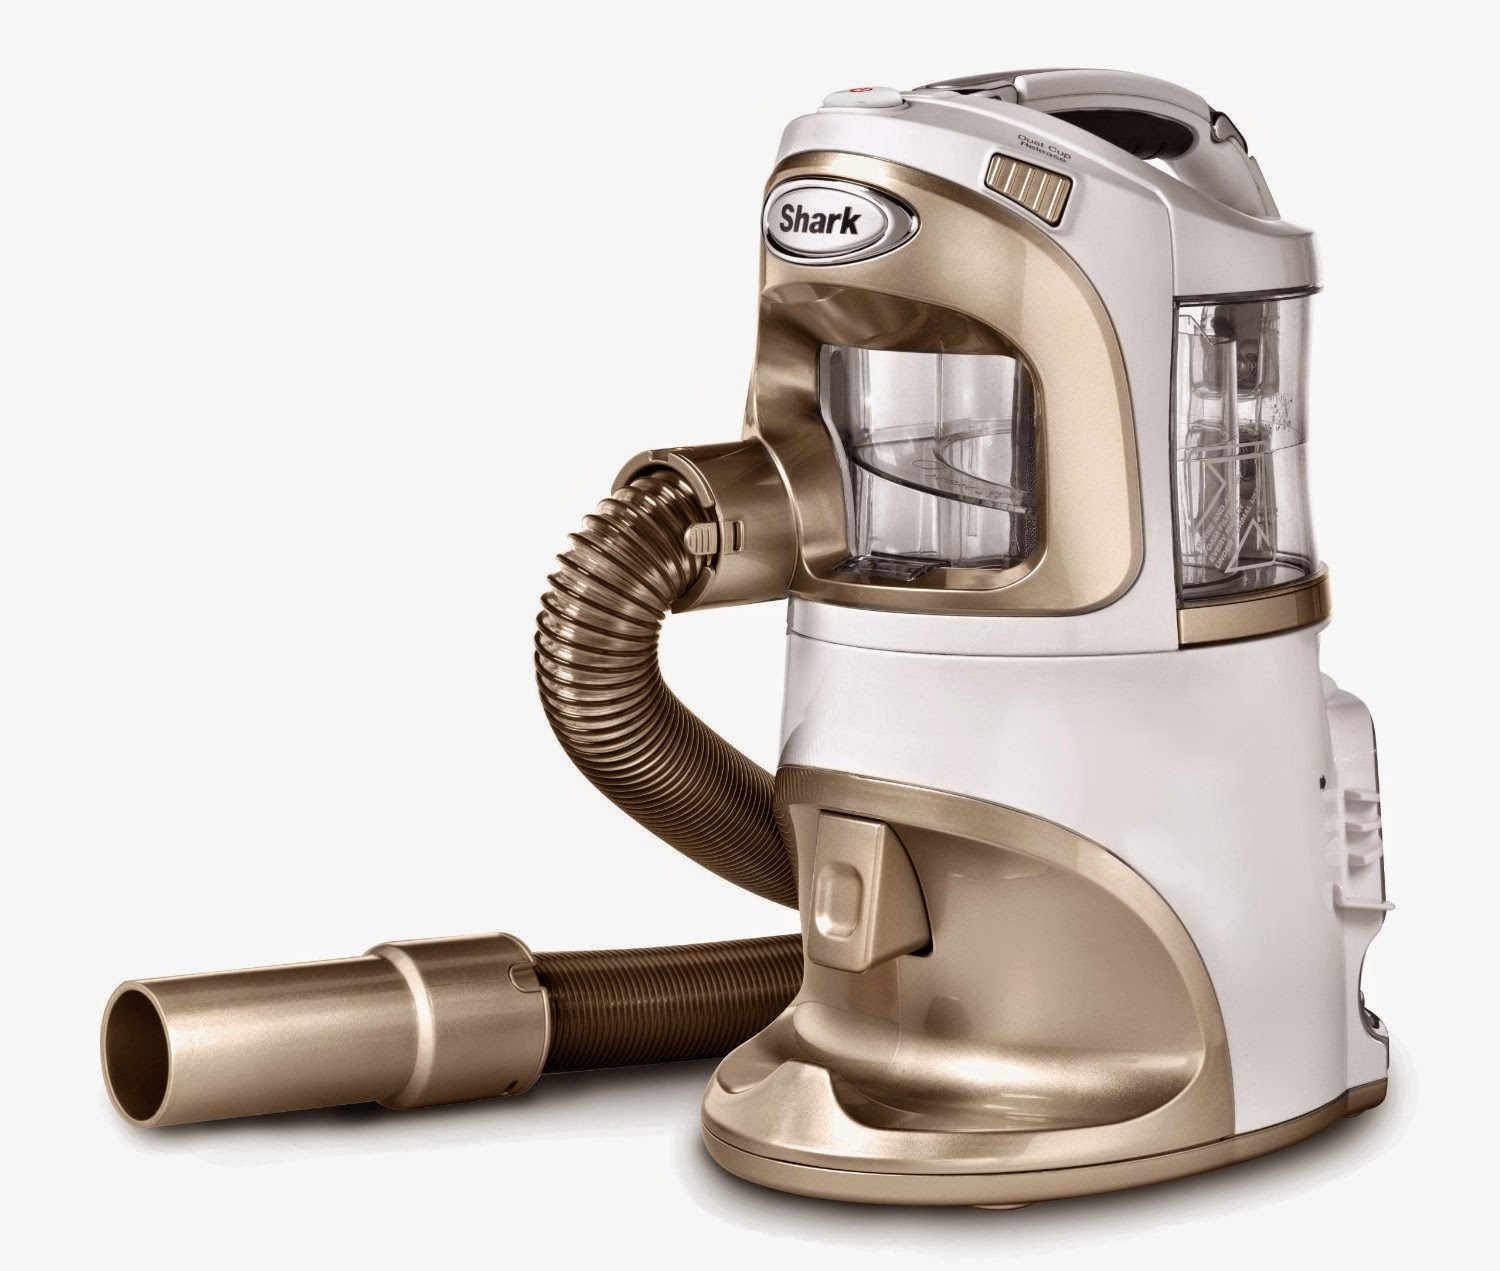 shark canister vacuum - Canister Vacuum Reviews